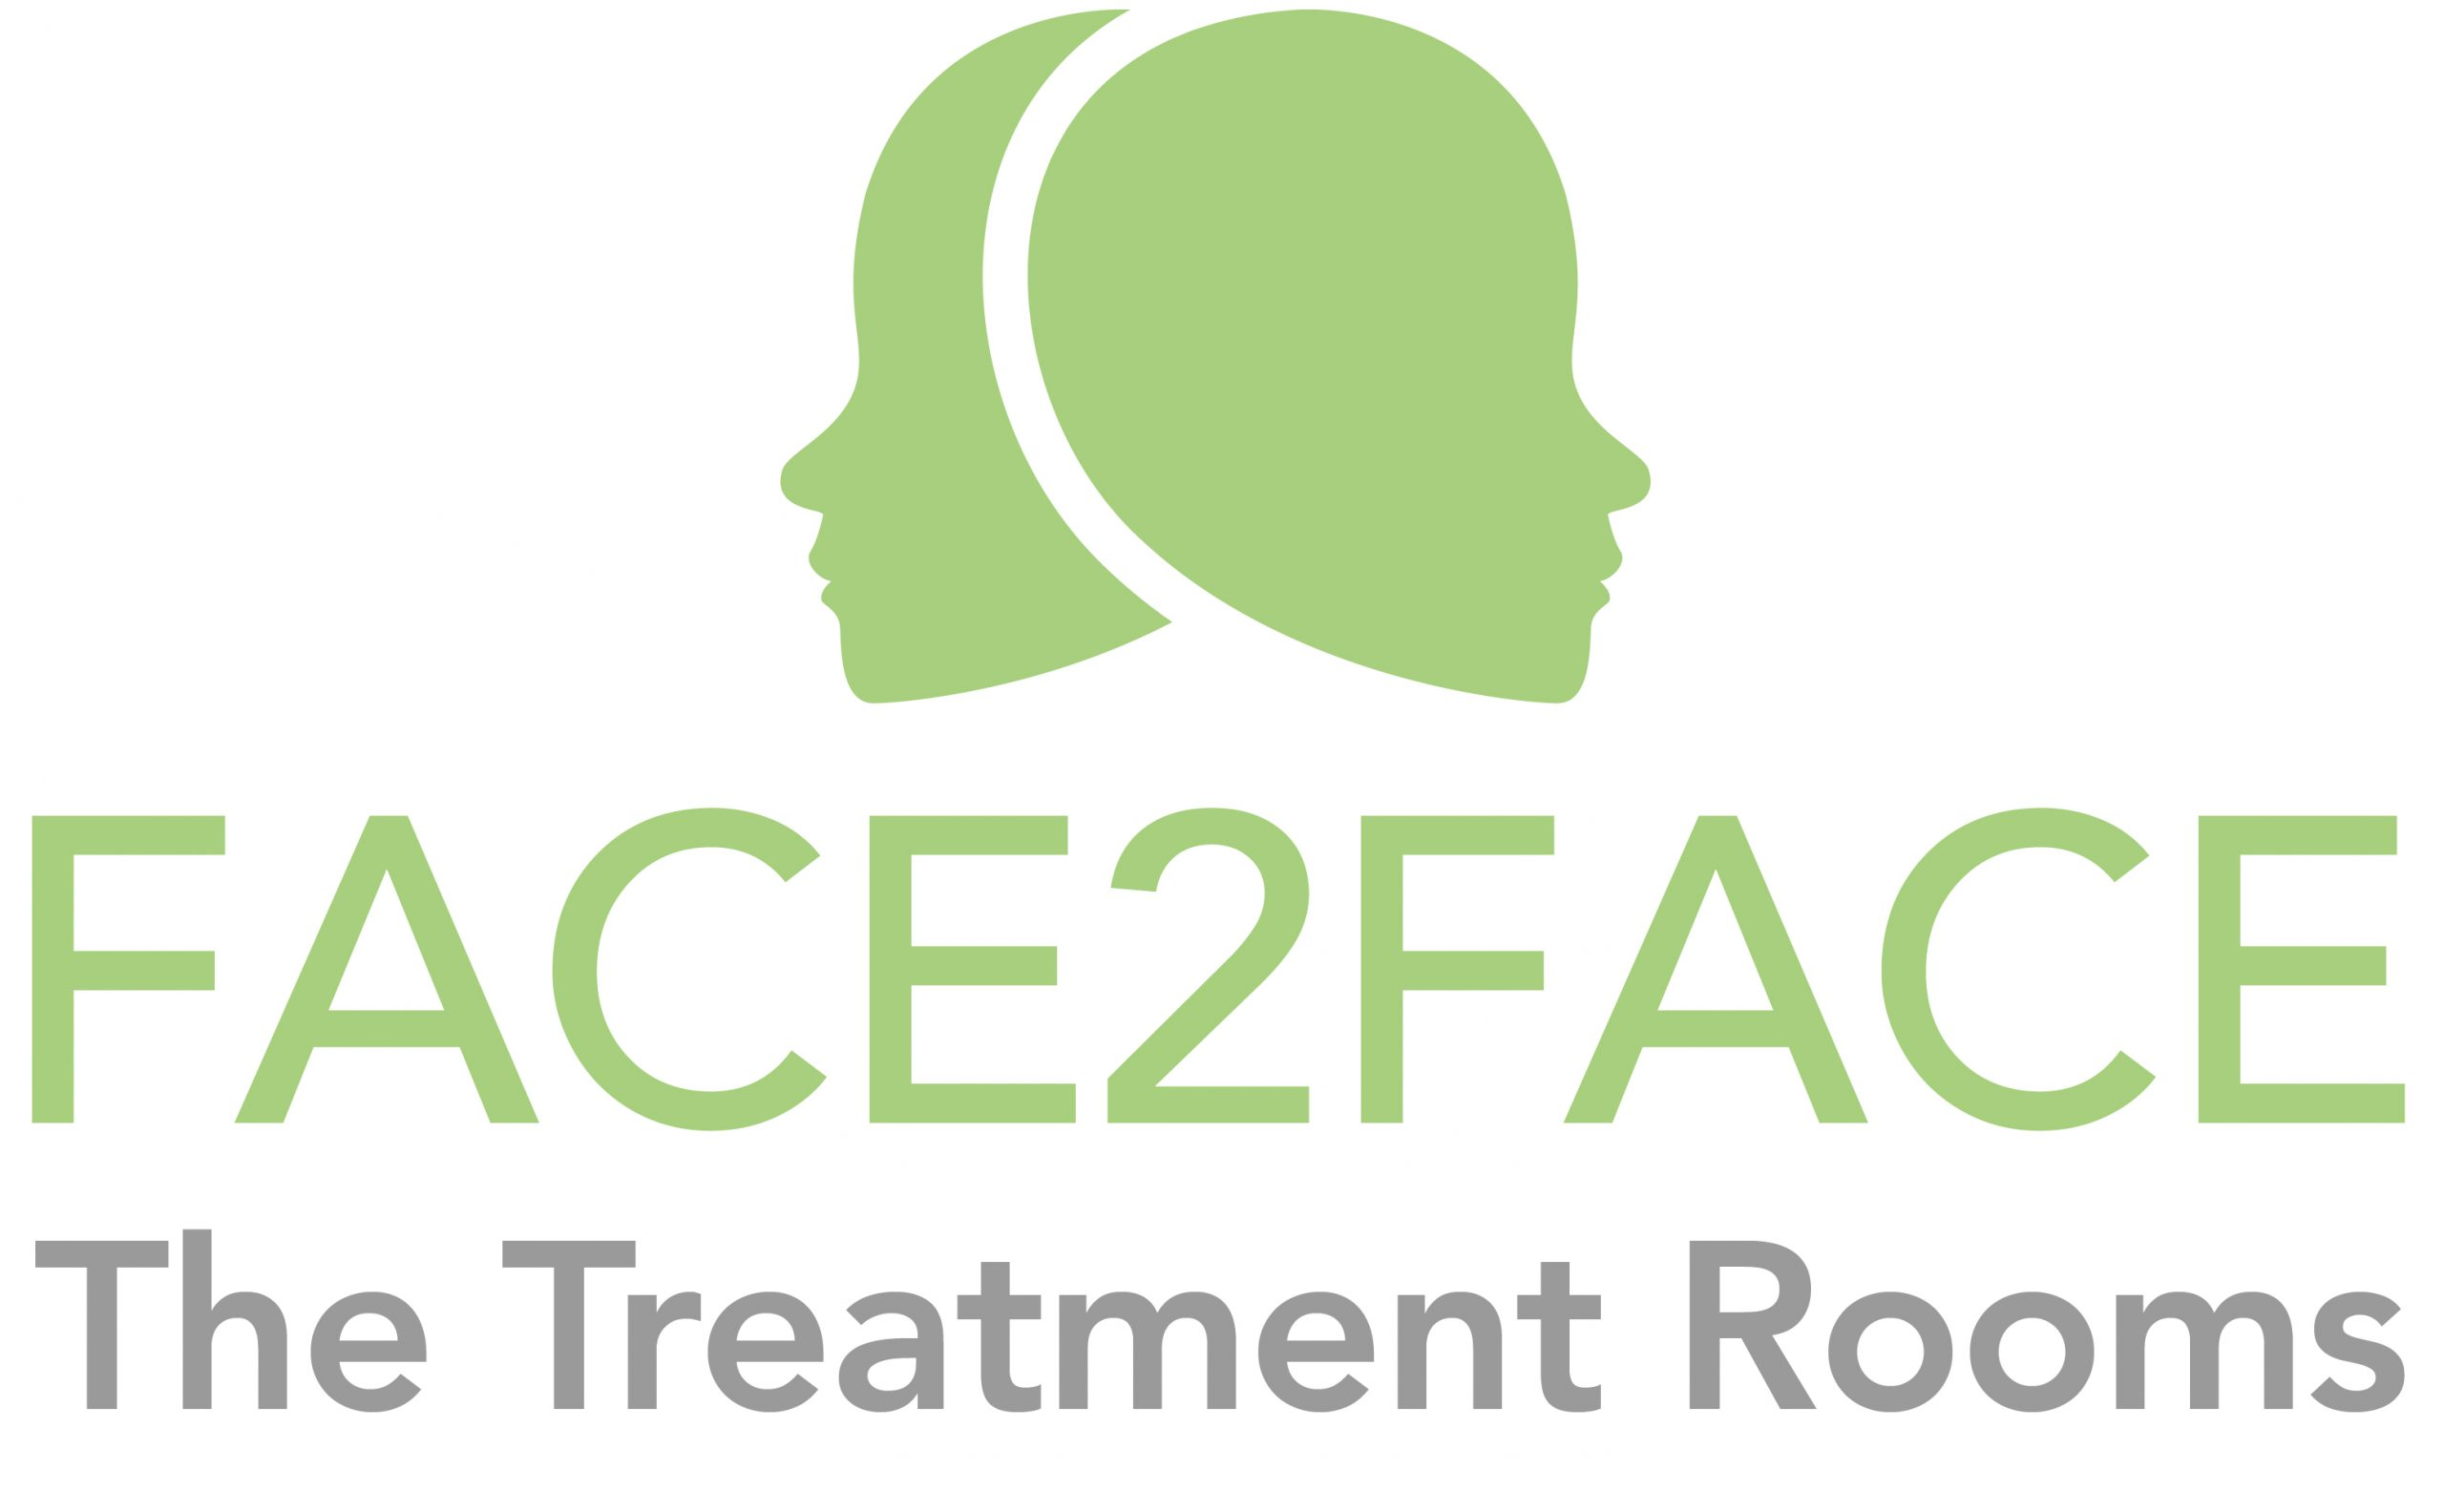 Face2face the treatment rooms logo